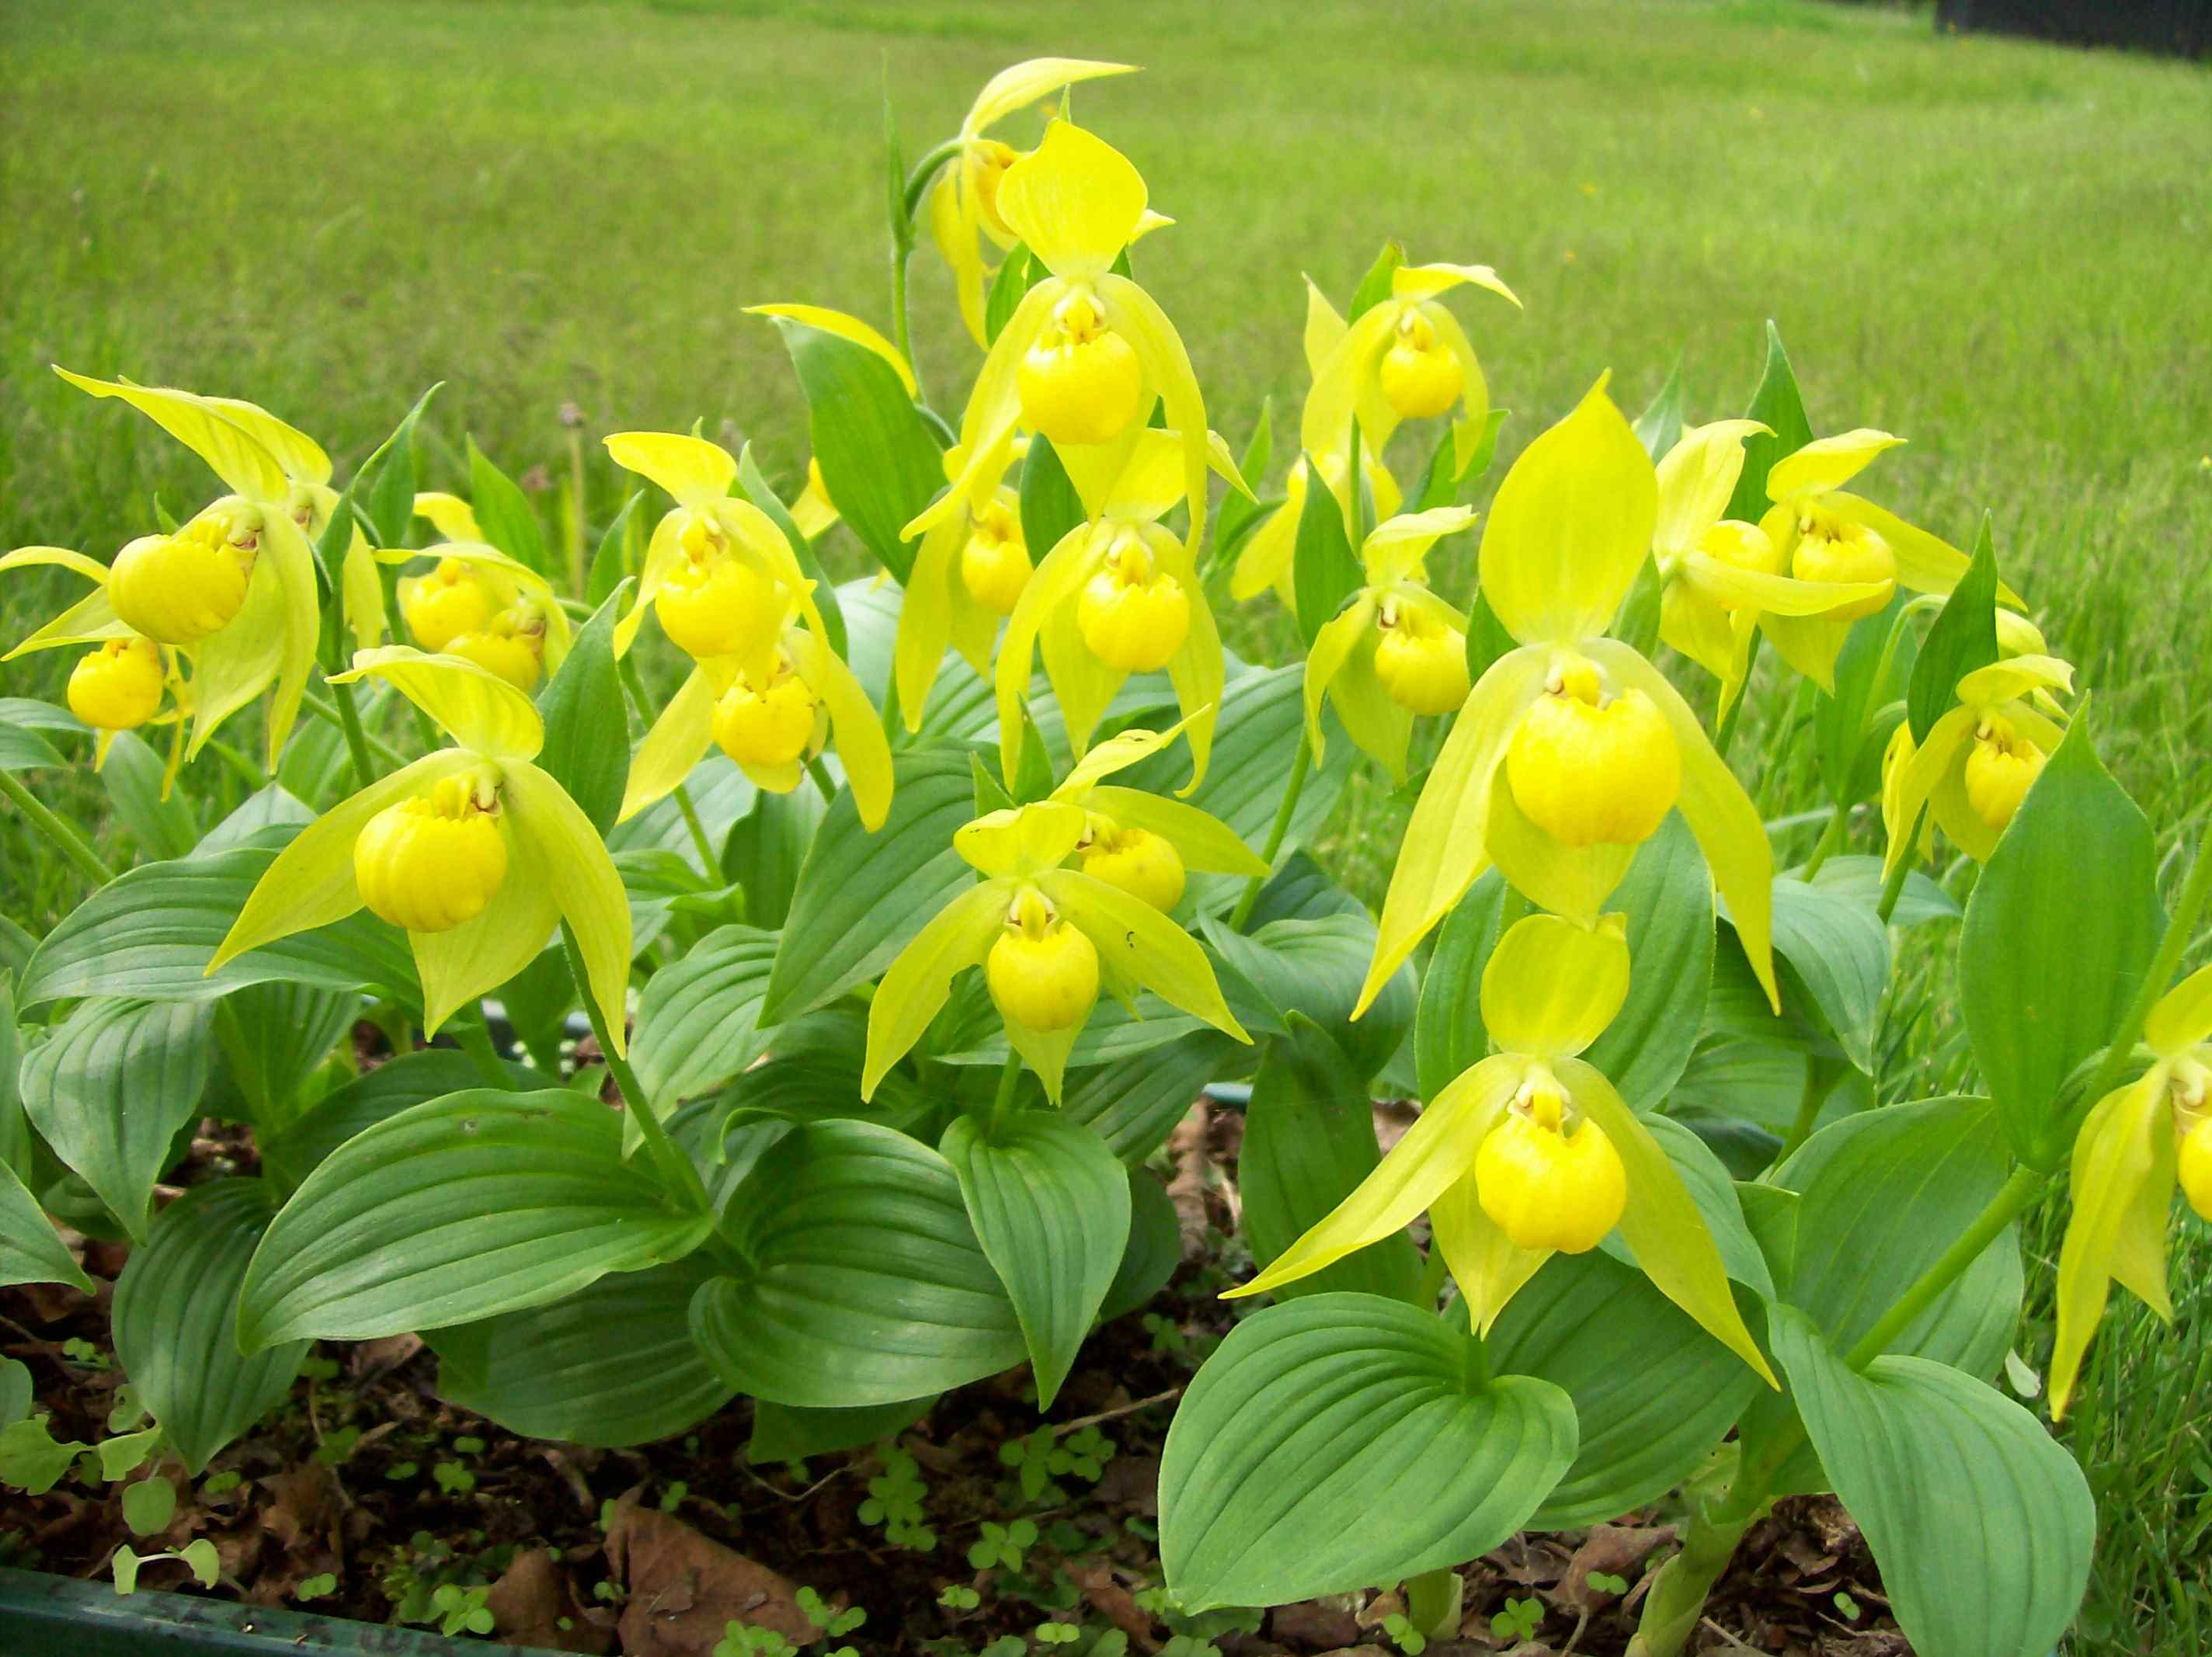 Cypripedium segawii